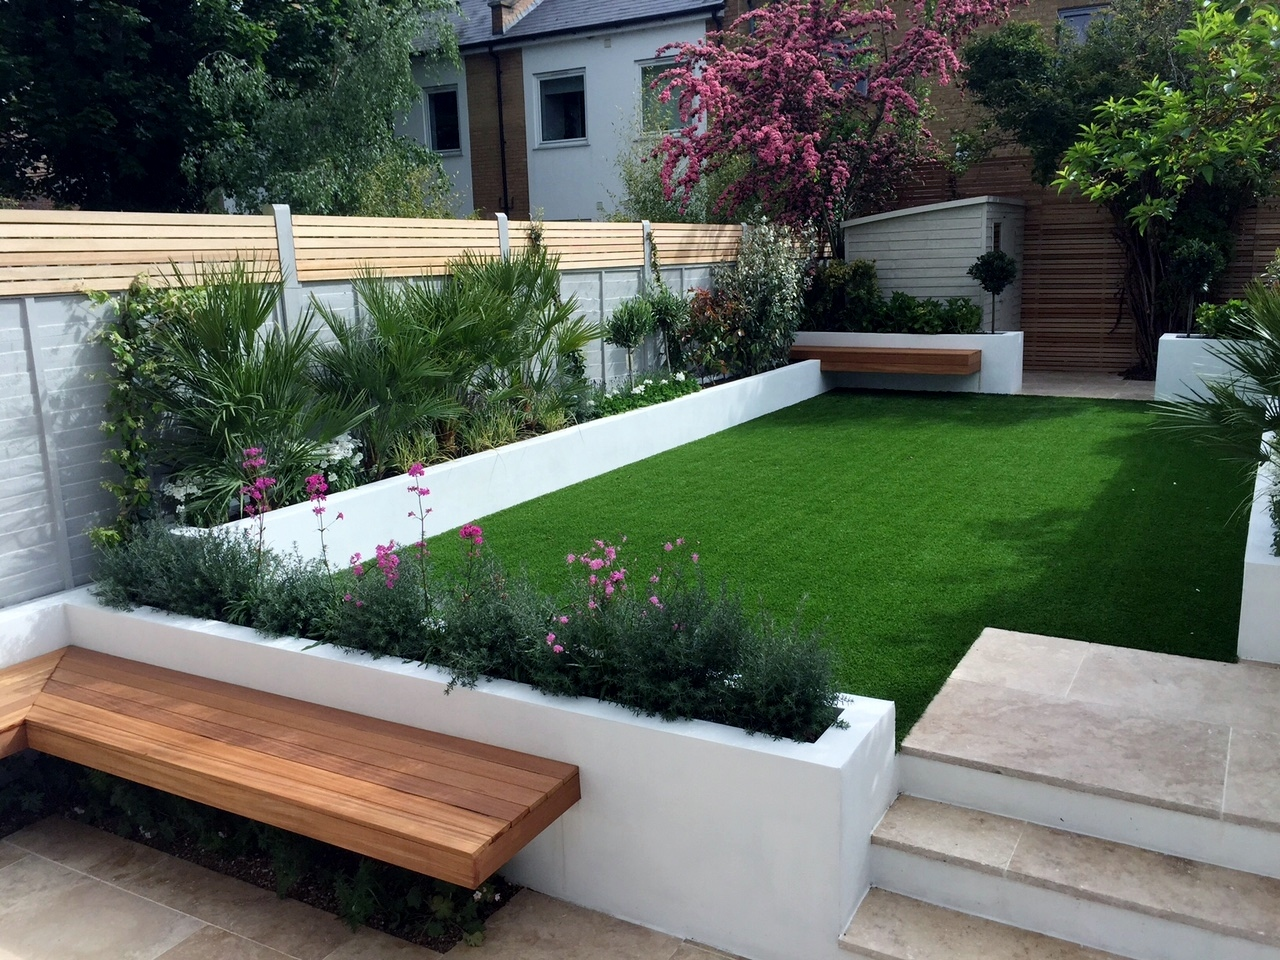 Modern garden design ideas fulham chelsea battersea for Garden design ideas in uk